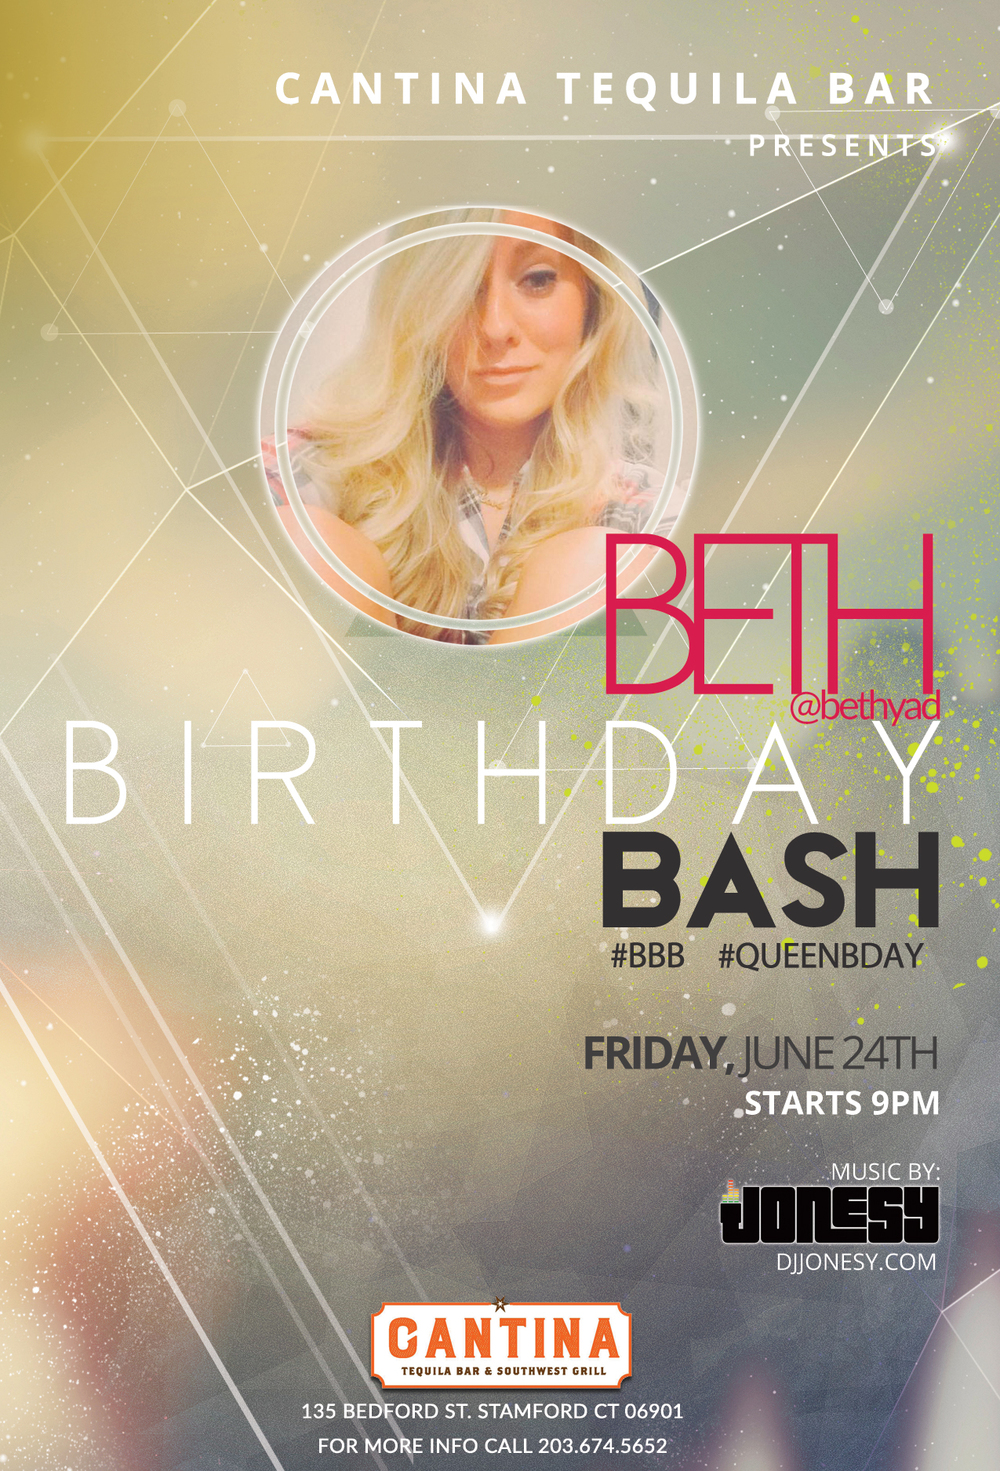 Come join us Friday, June 24th @ Cantina Tequila Bar & Southwest Grill as we celebrate my Girlfriend @bethyad on her BIRTHDAY!  Music starts at 9pm and goes all night long.  See everyone there!  #BBB #QUEENBDAY